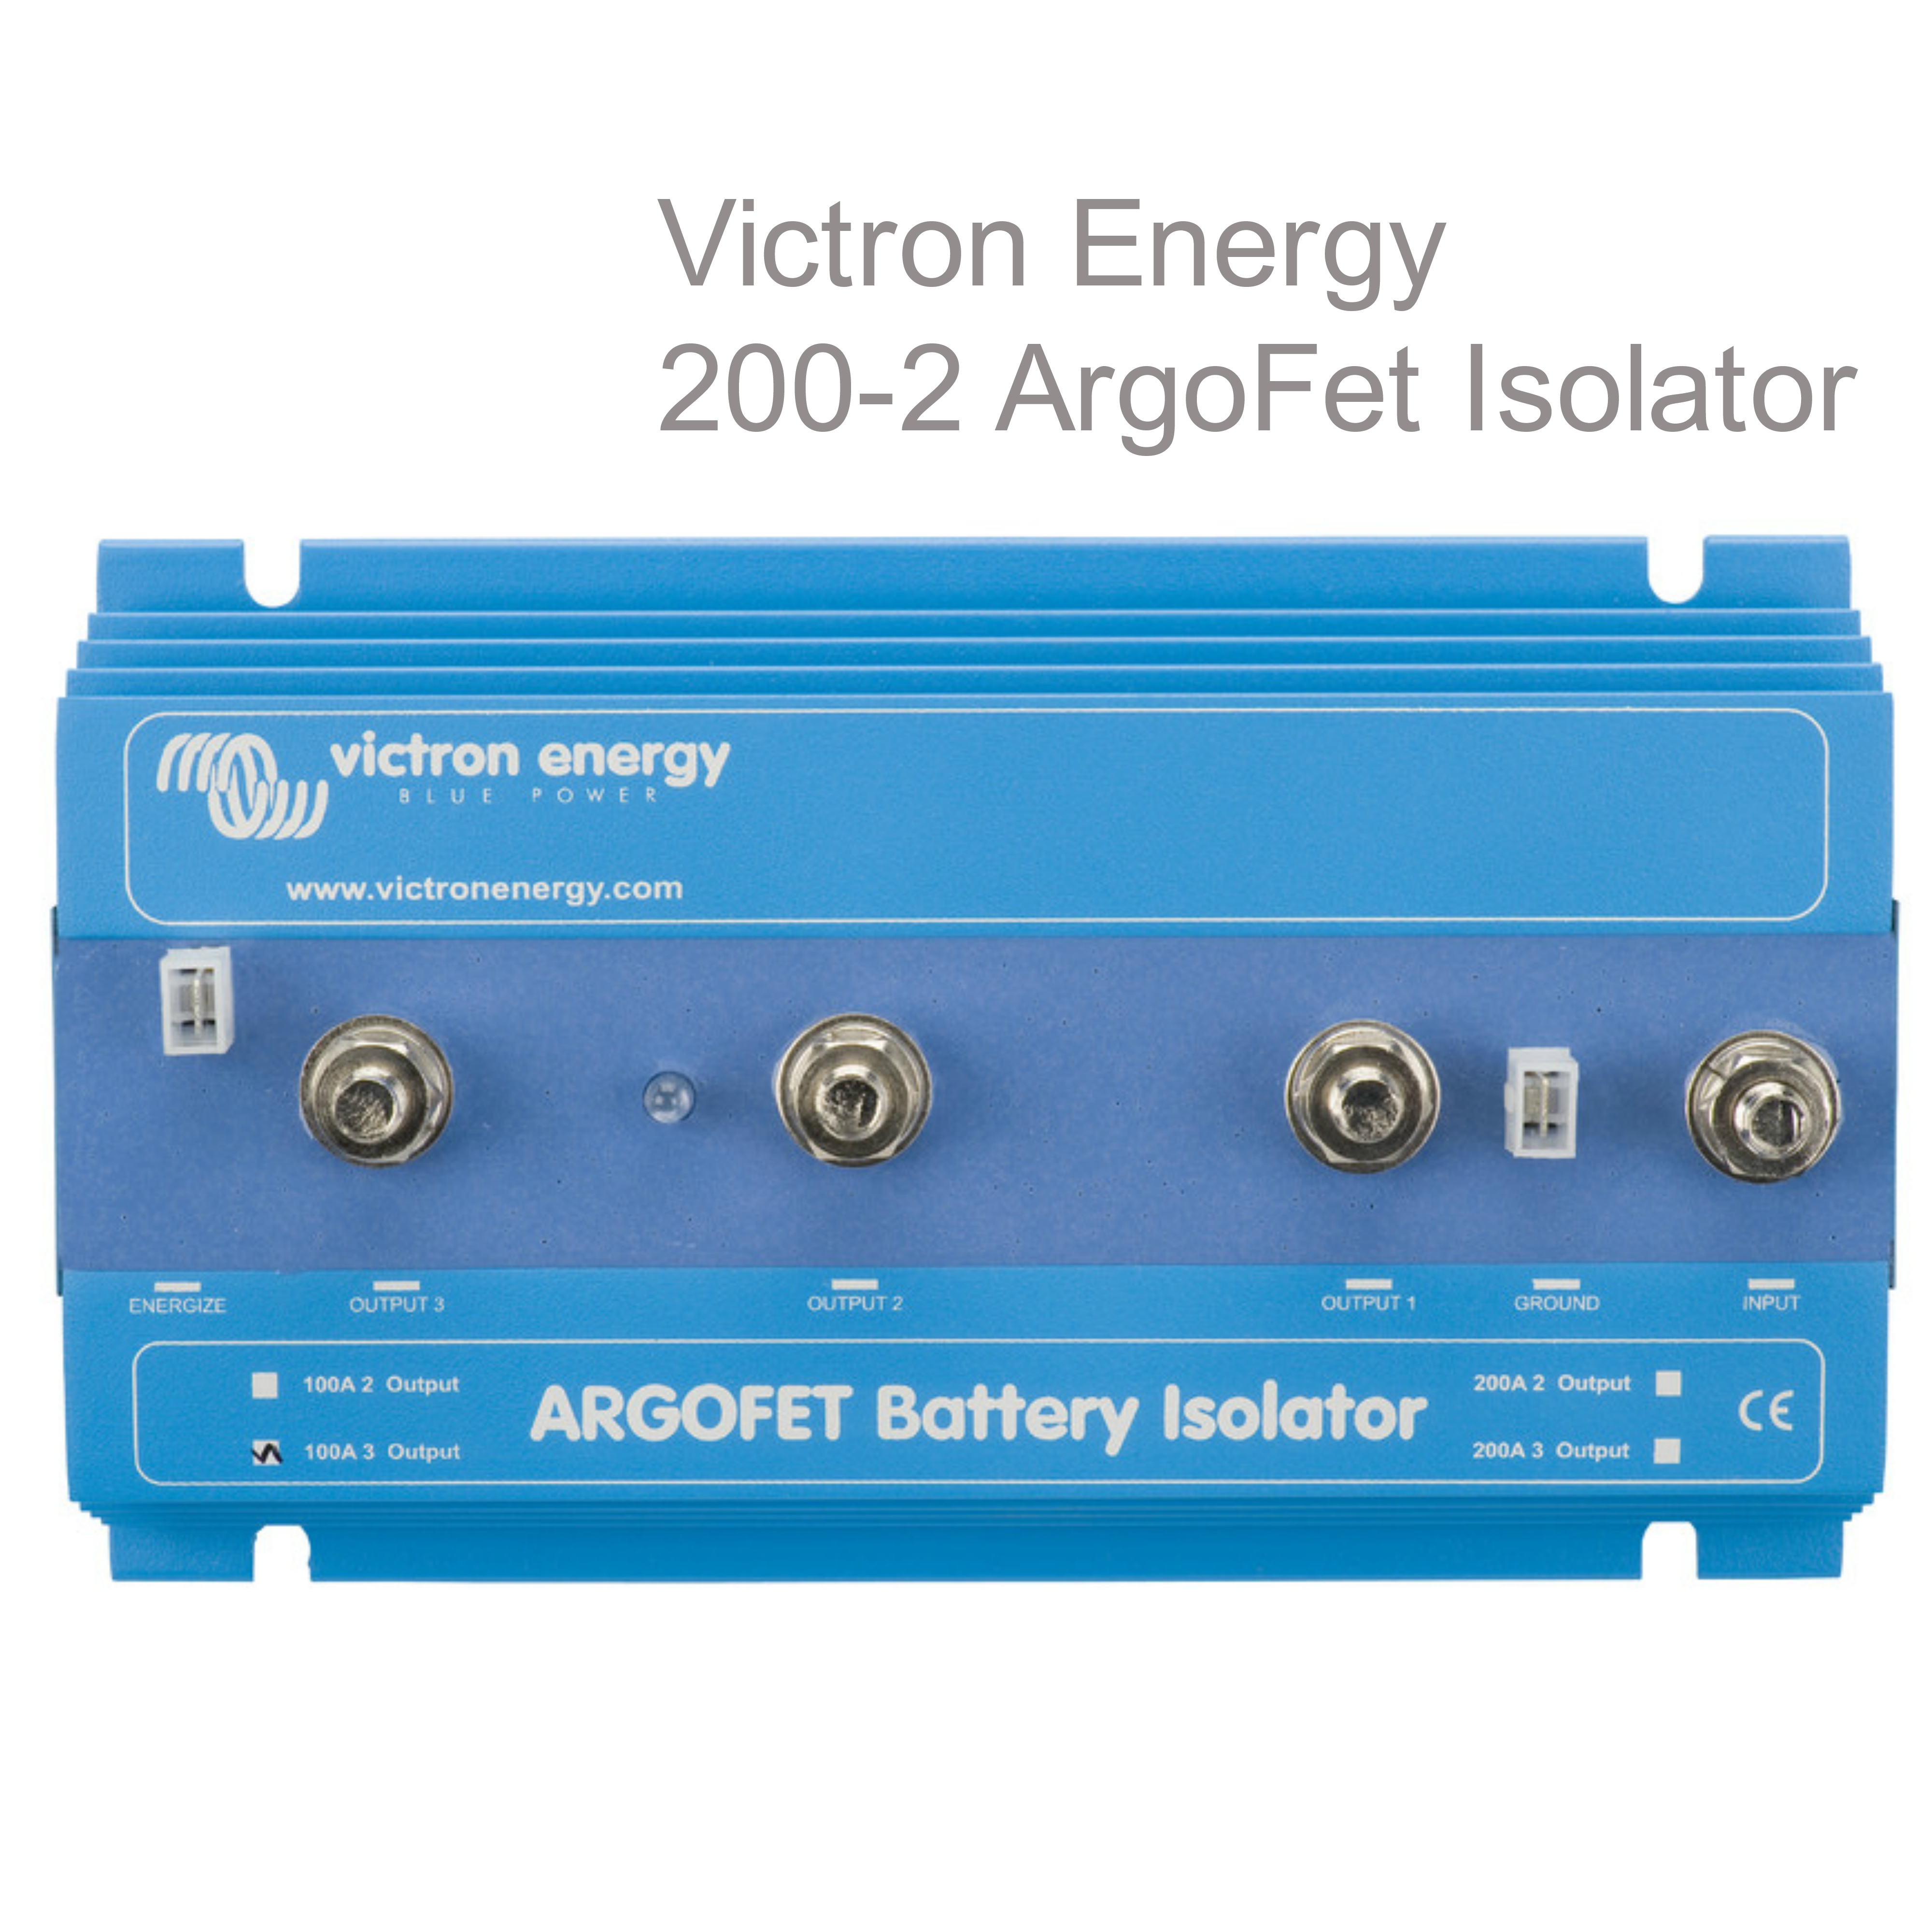 Victron Energy 200-2 Argo-FET Battery Isolator|2 Batteries-200A|M8 Bolt|Use Marine & Boats